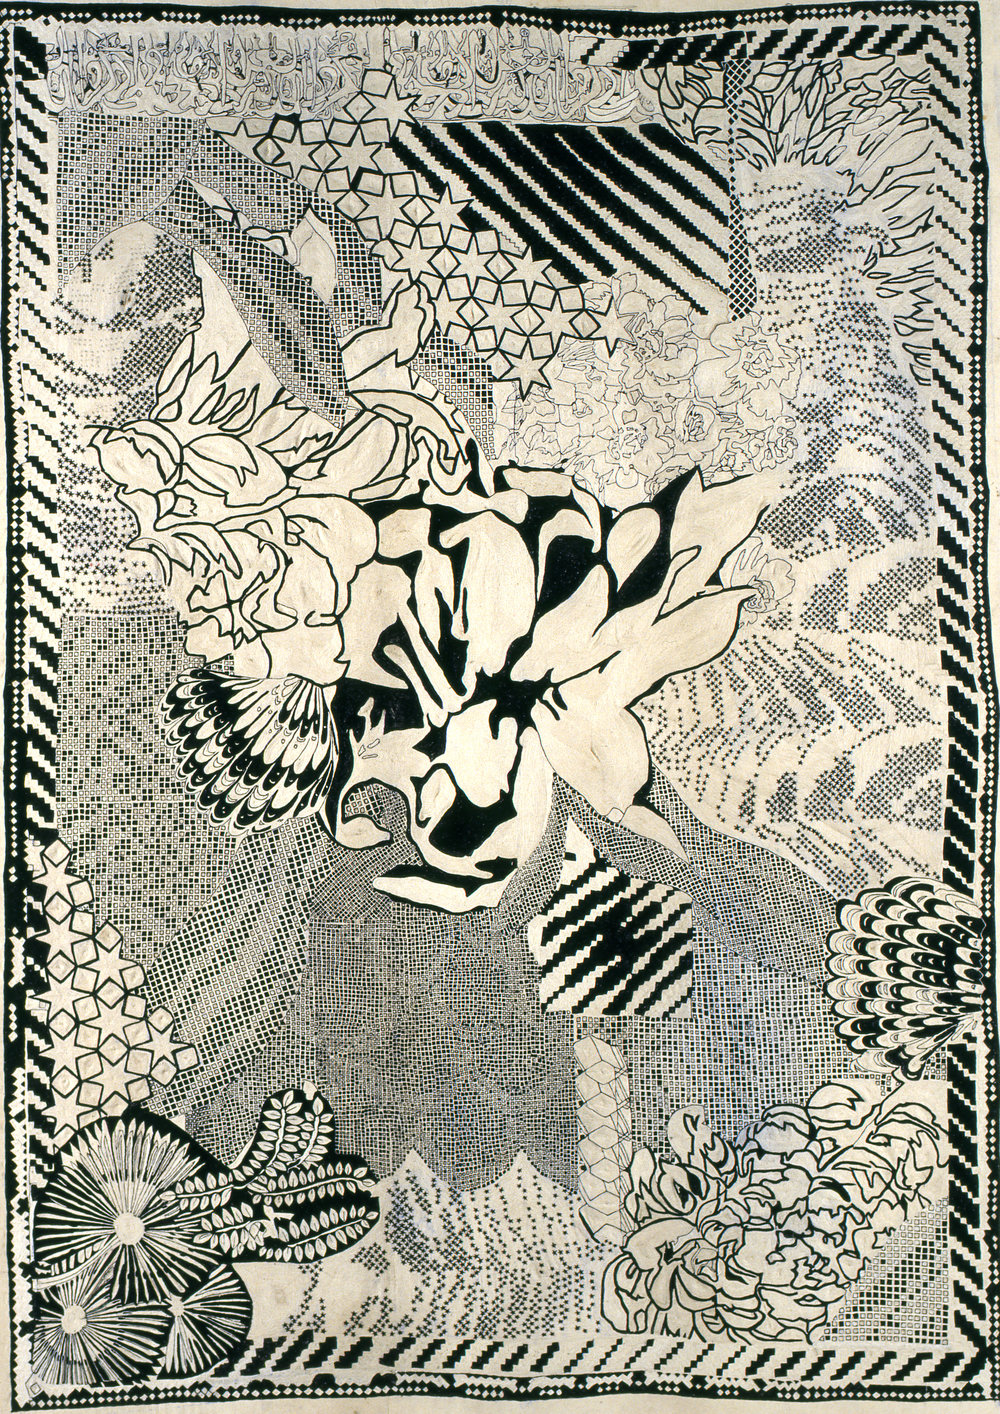 Composition in black and white, hand embroidered, 235 x 165 cm, 2006-2010